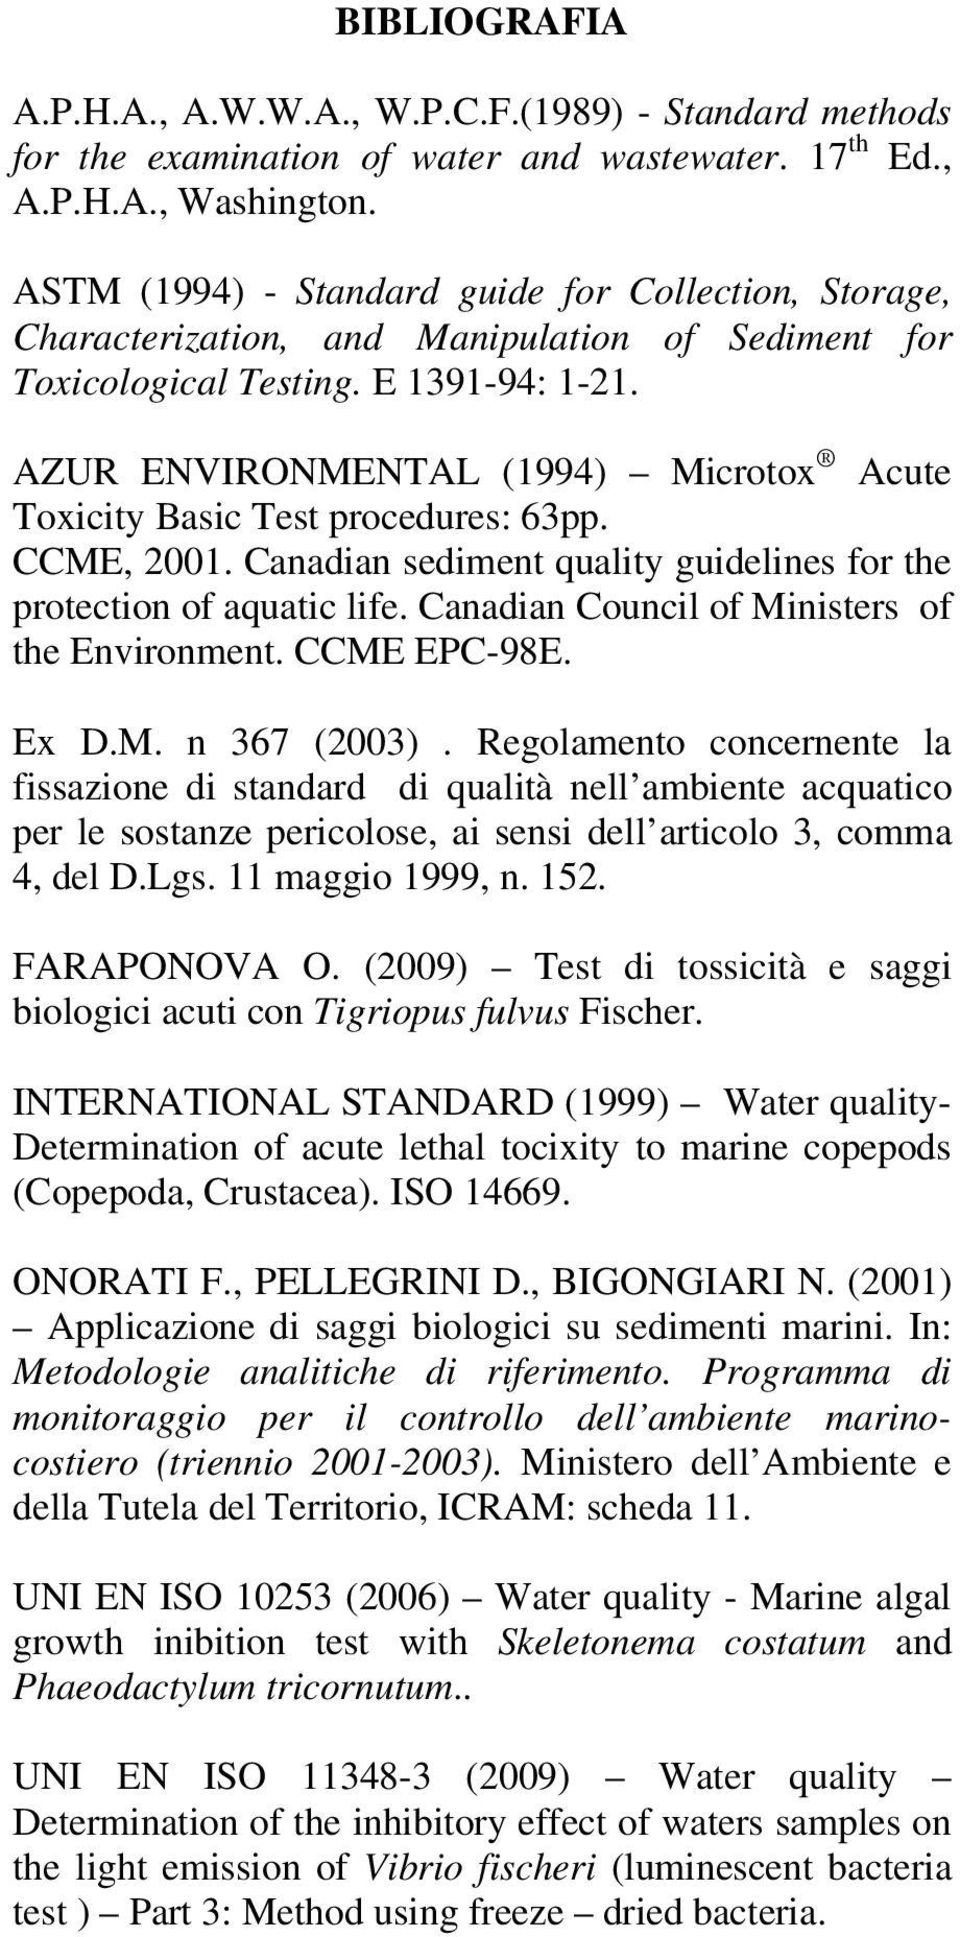 AZUR ENVIRONMENTAL (1994) Microtox Acute Toxicity Basic Test procedures: 63pp. CCME, 2001. Canadian sediment quality guidelines for the protection of aquatic life.